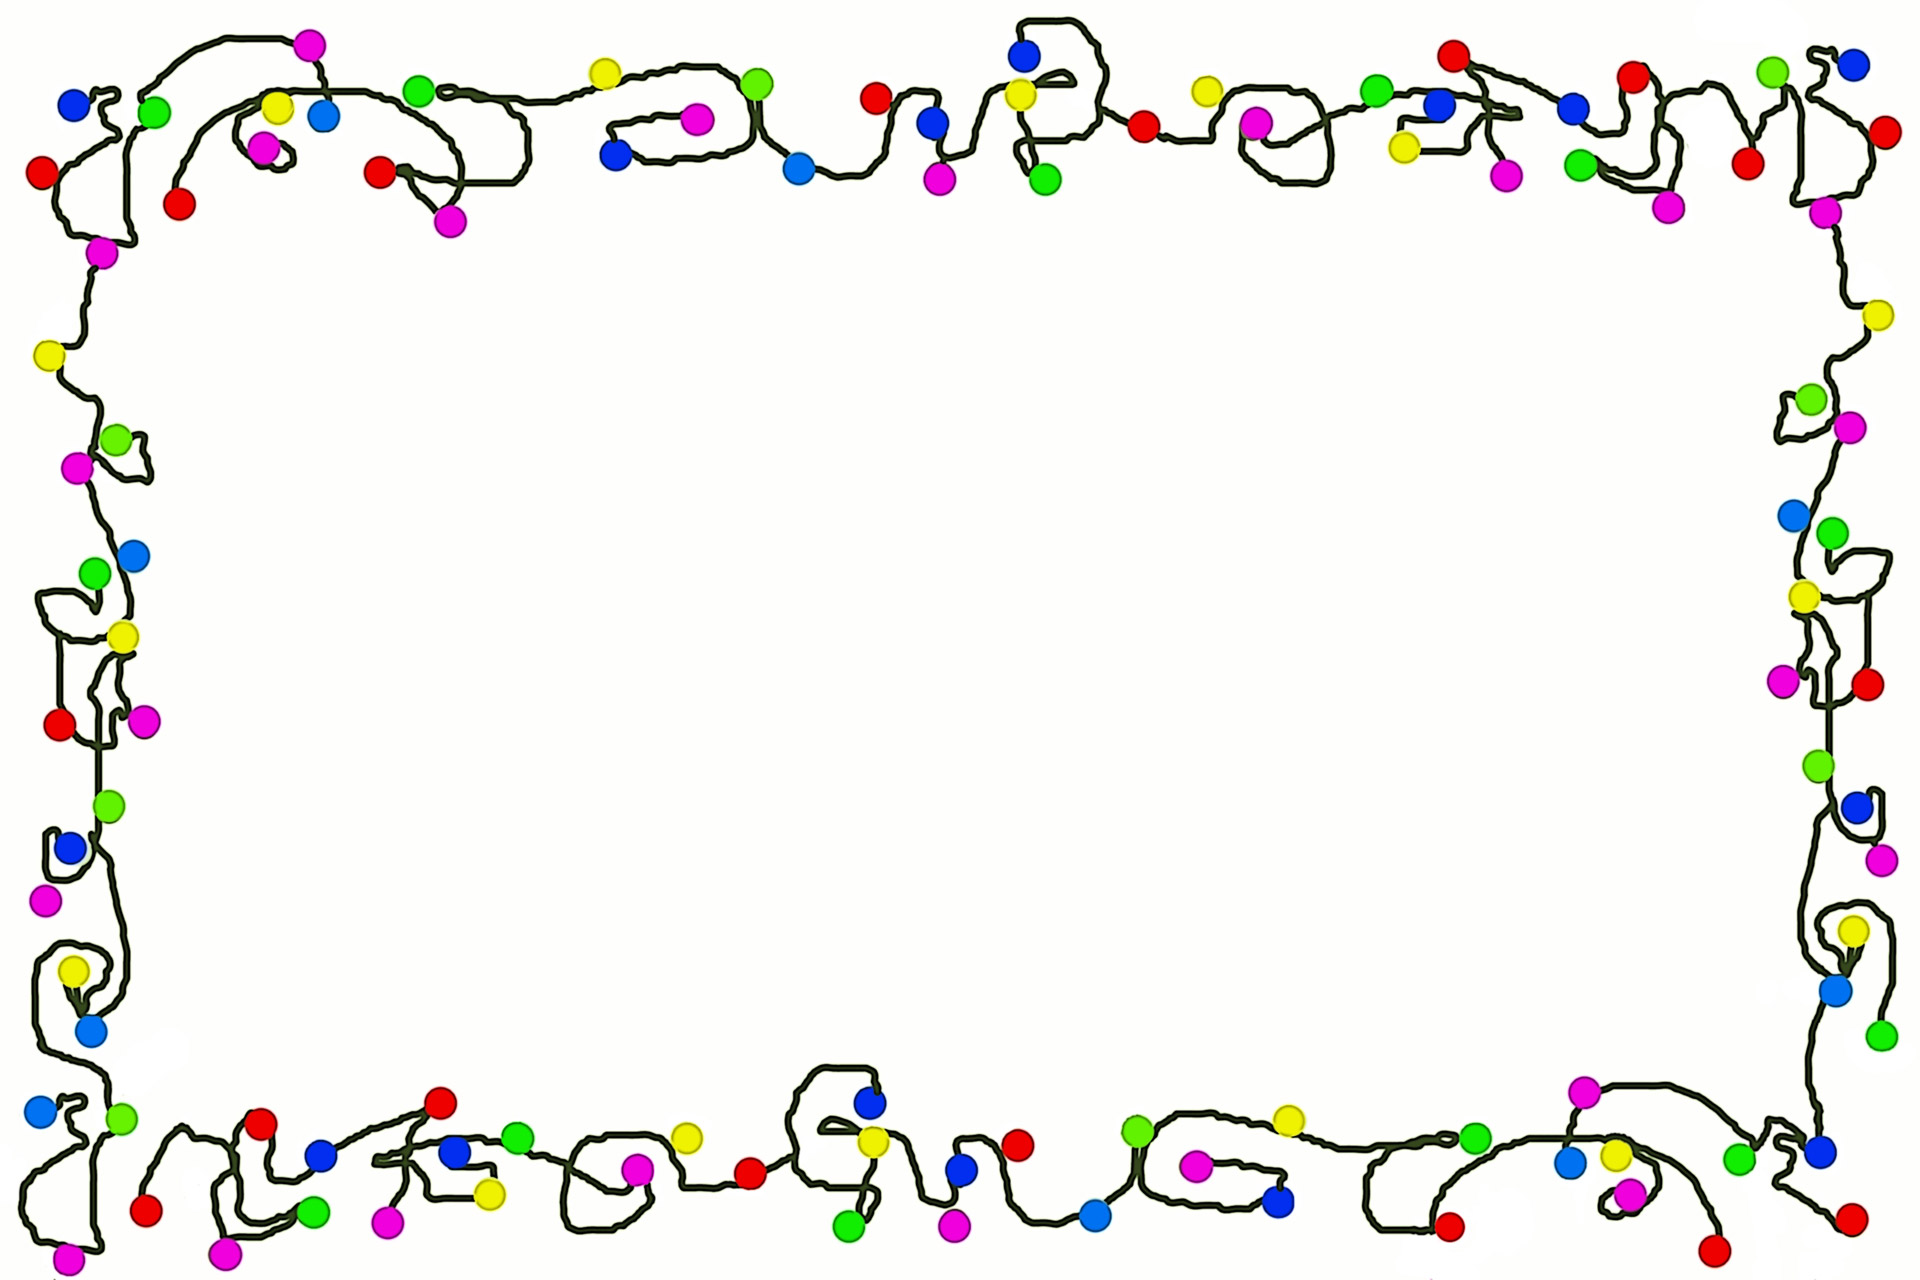 Bells Garland Christmas Lights Border Clipart - Clipart Kid